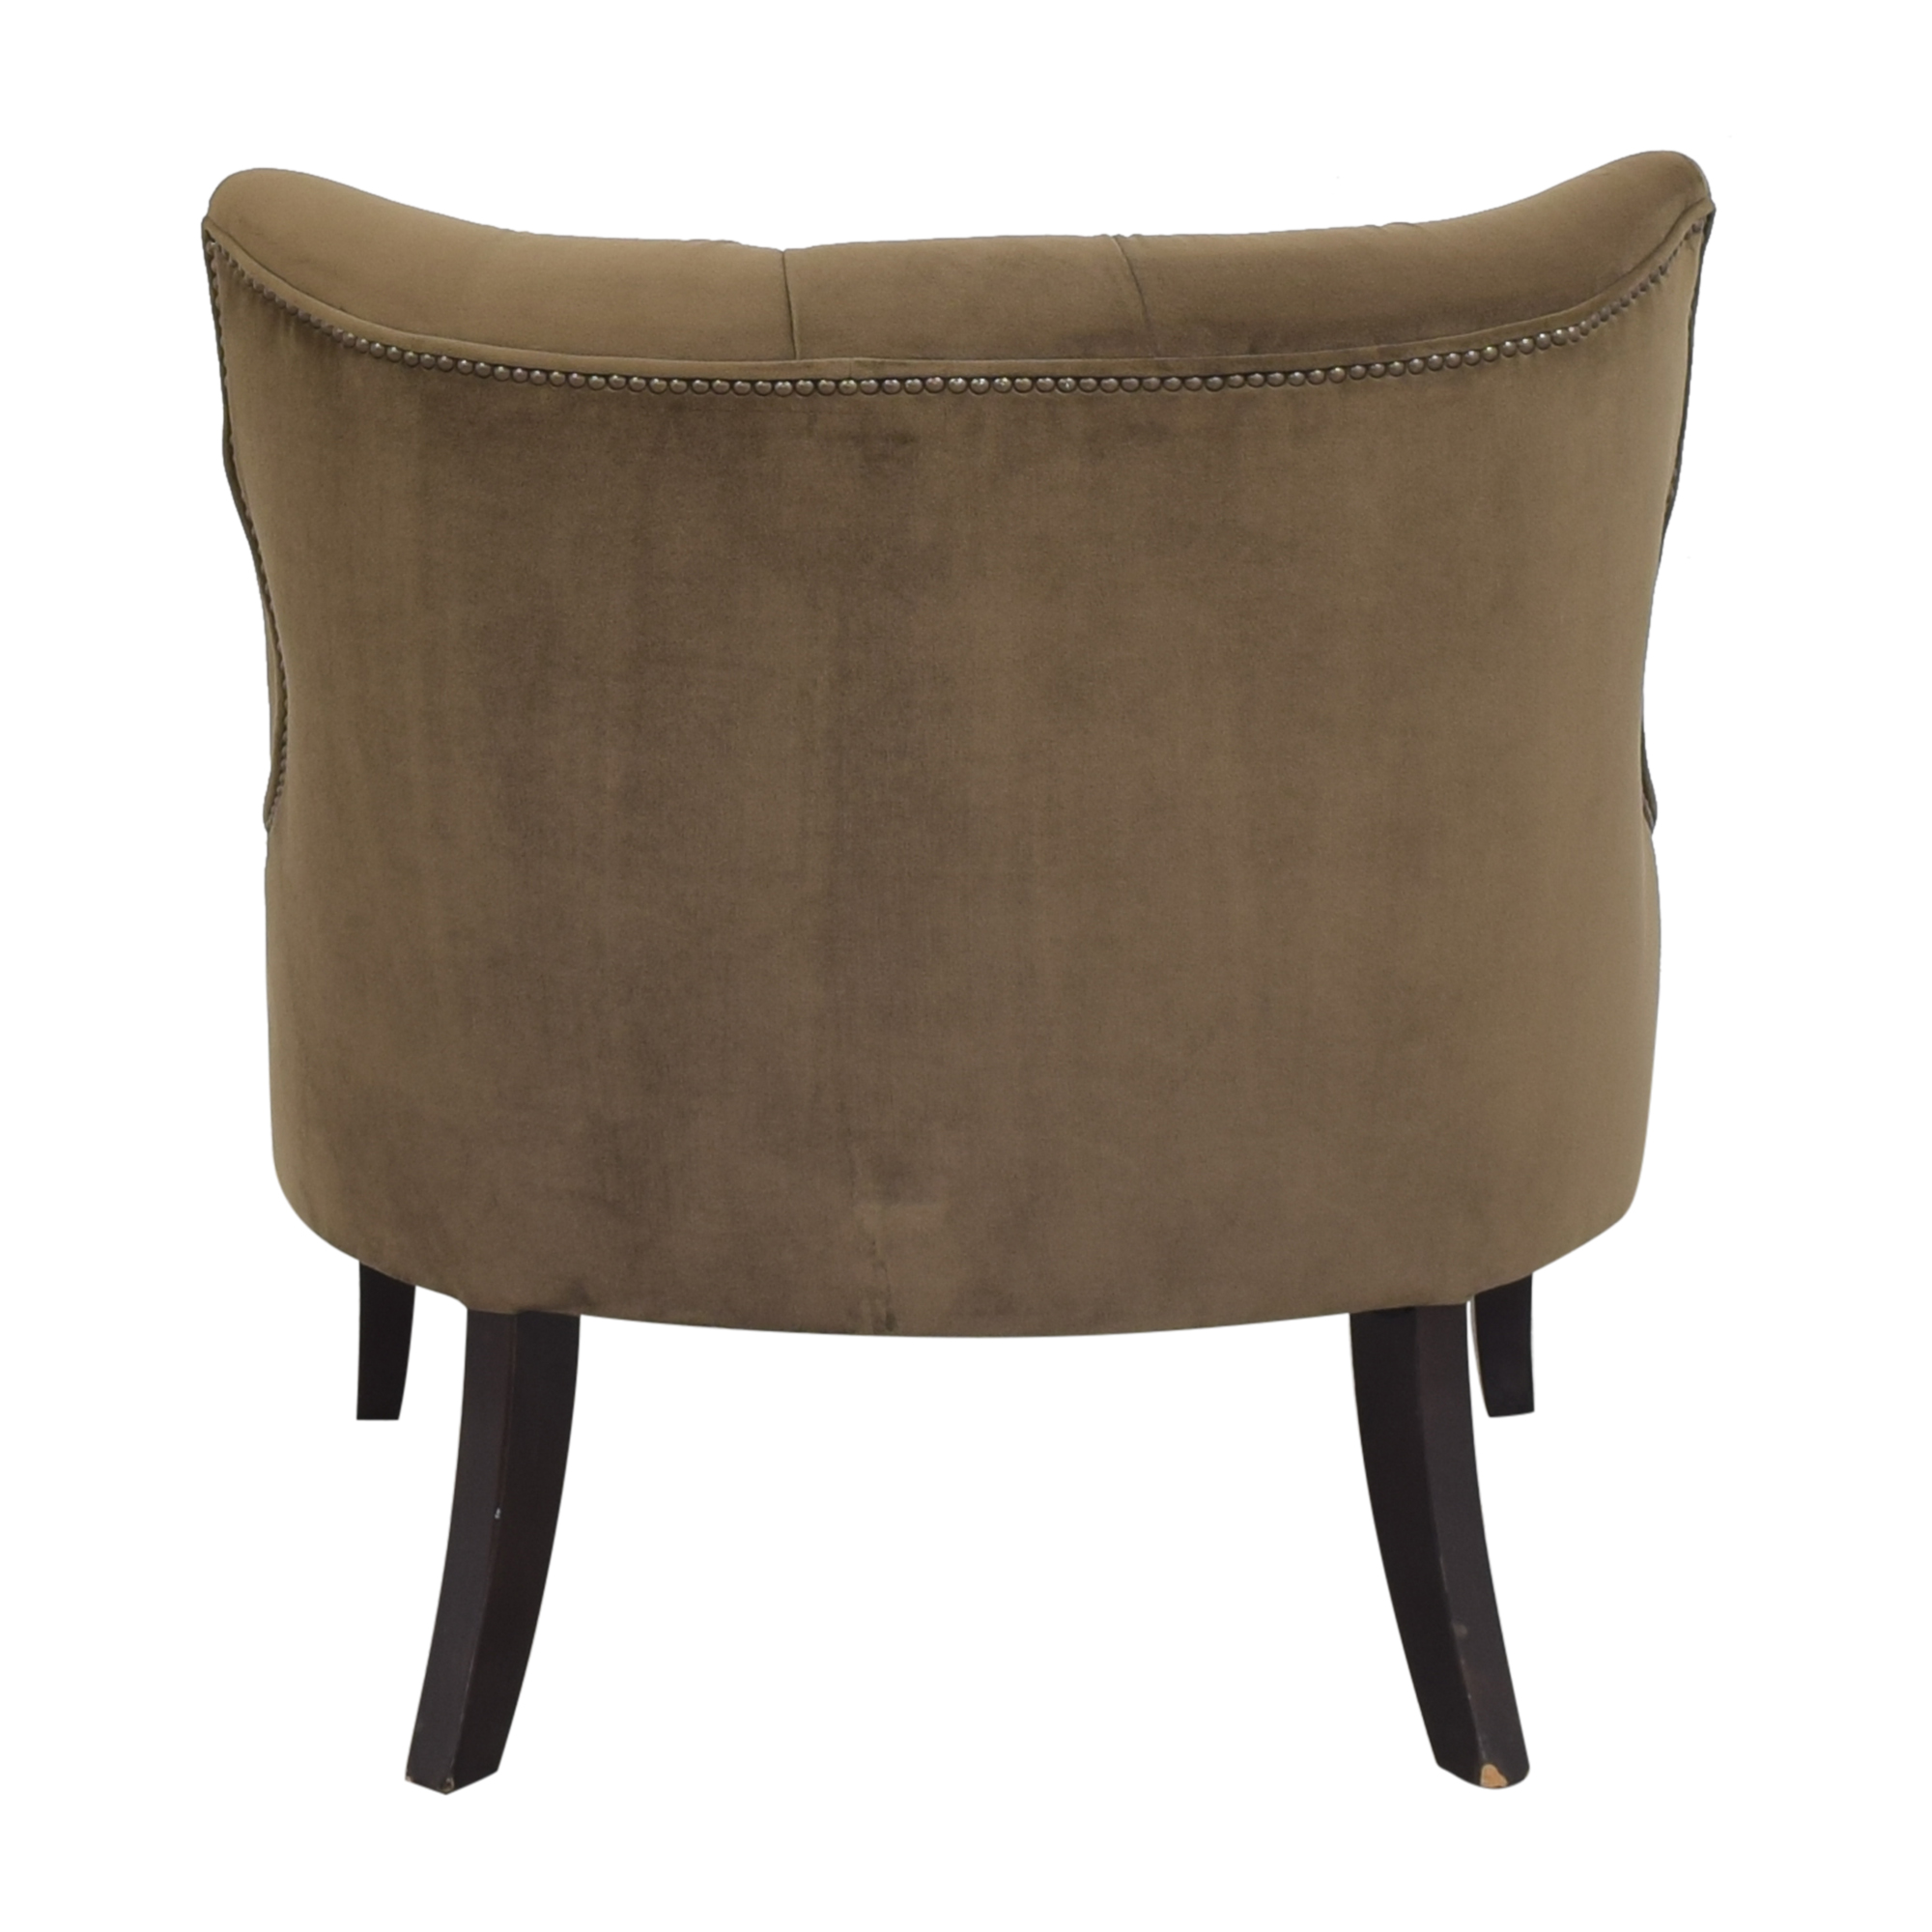 Patagonia Patagonia Tufted Accent Chair on sale